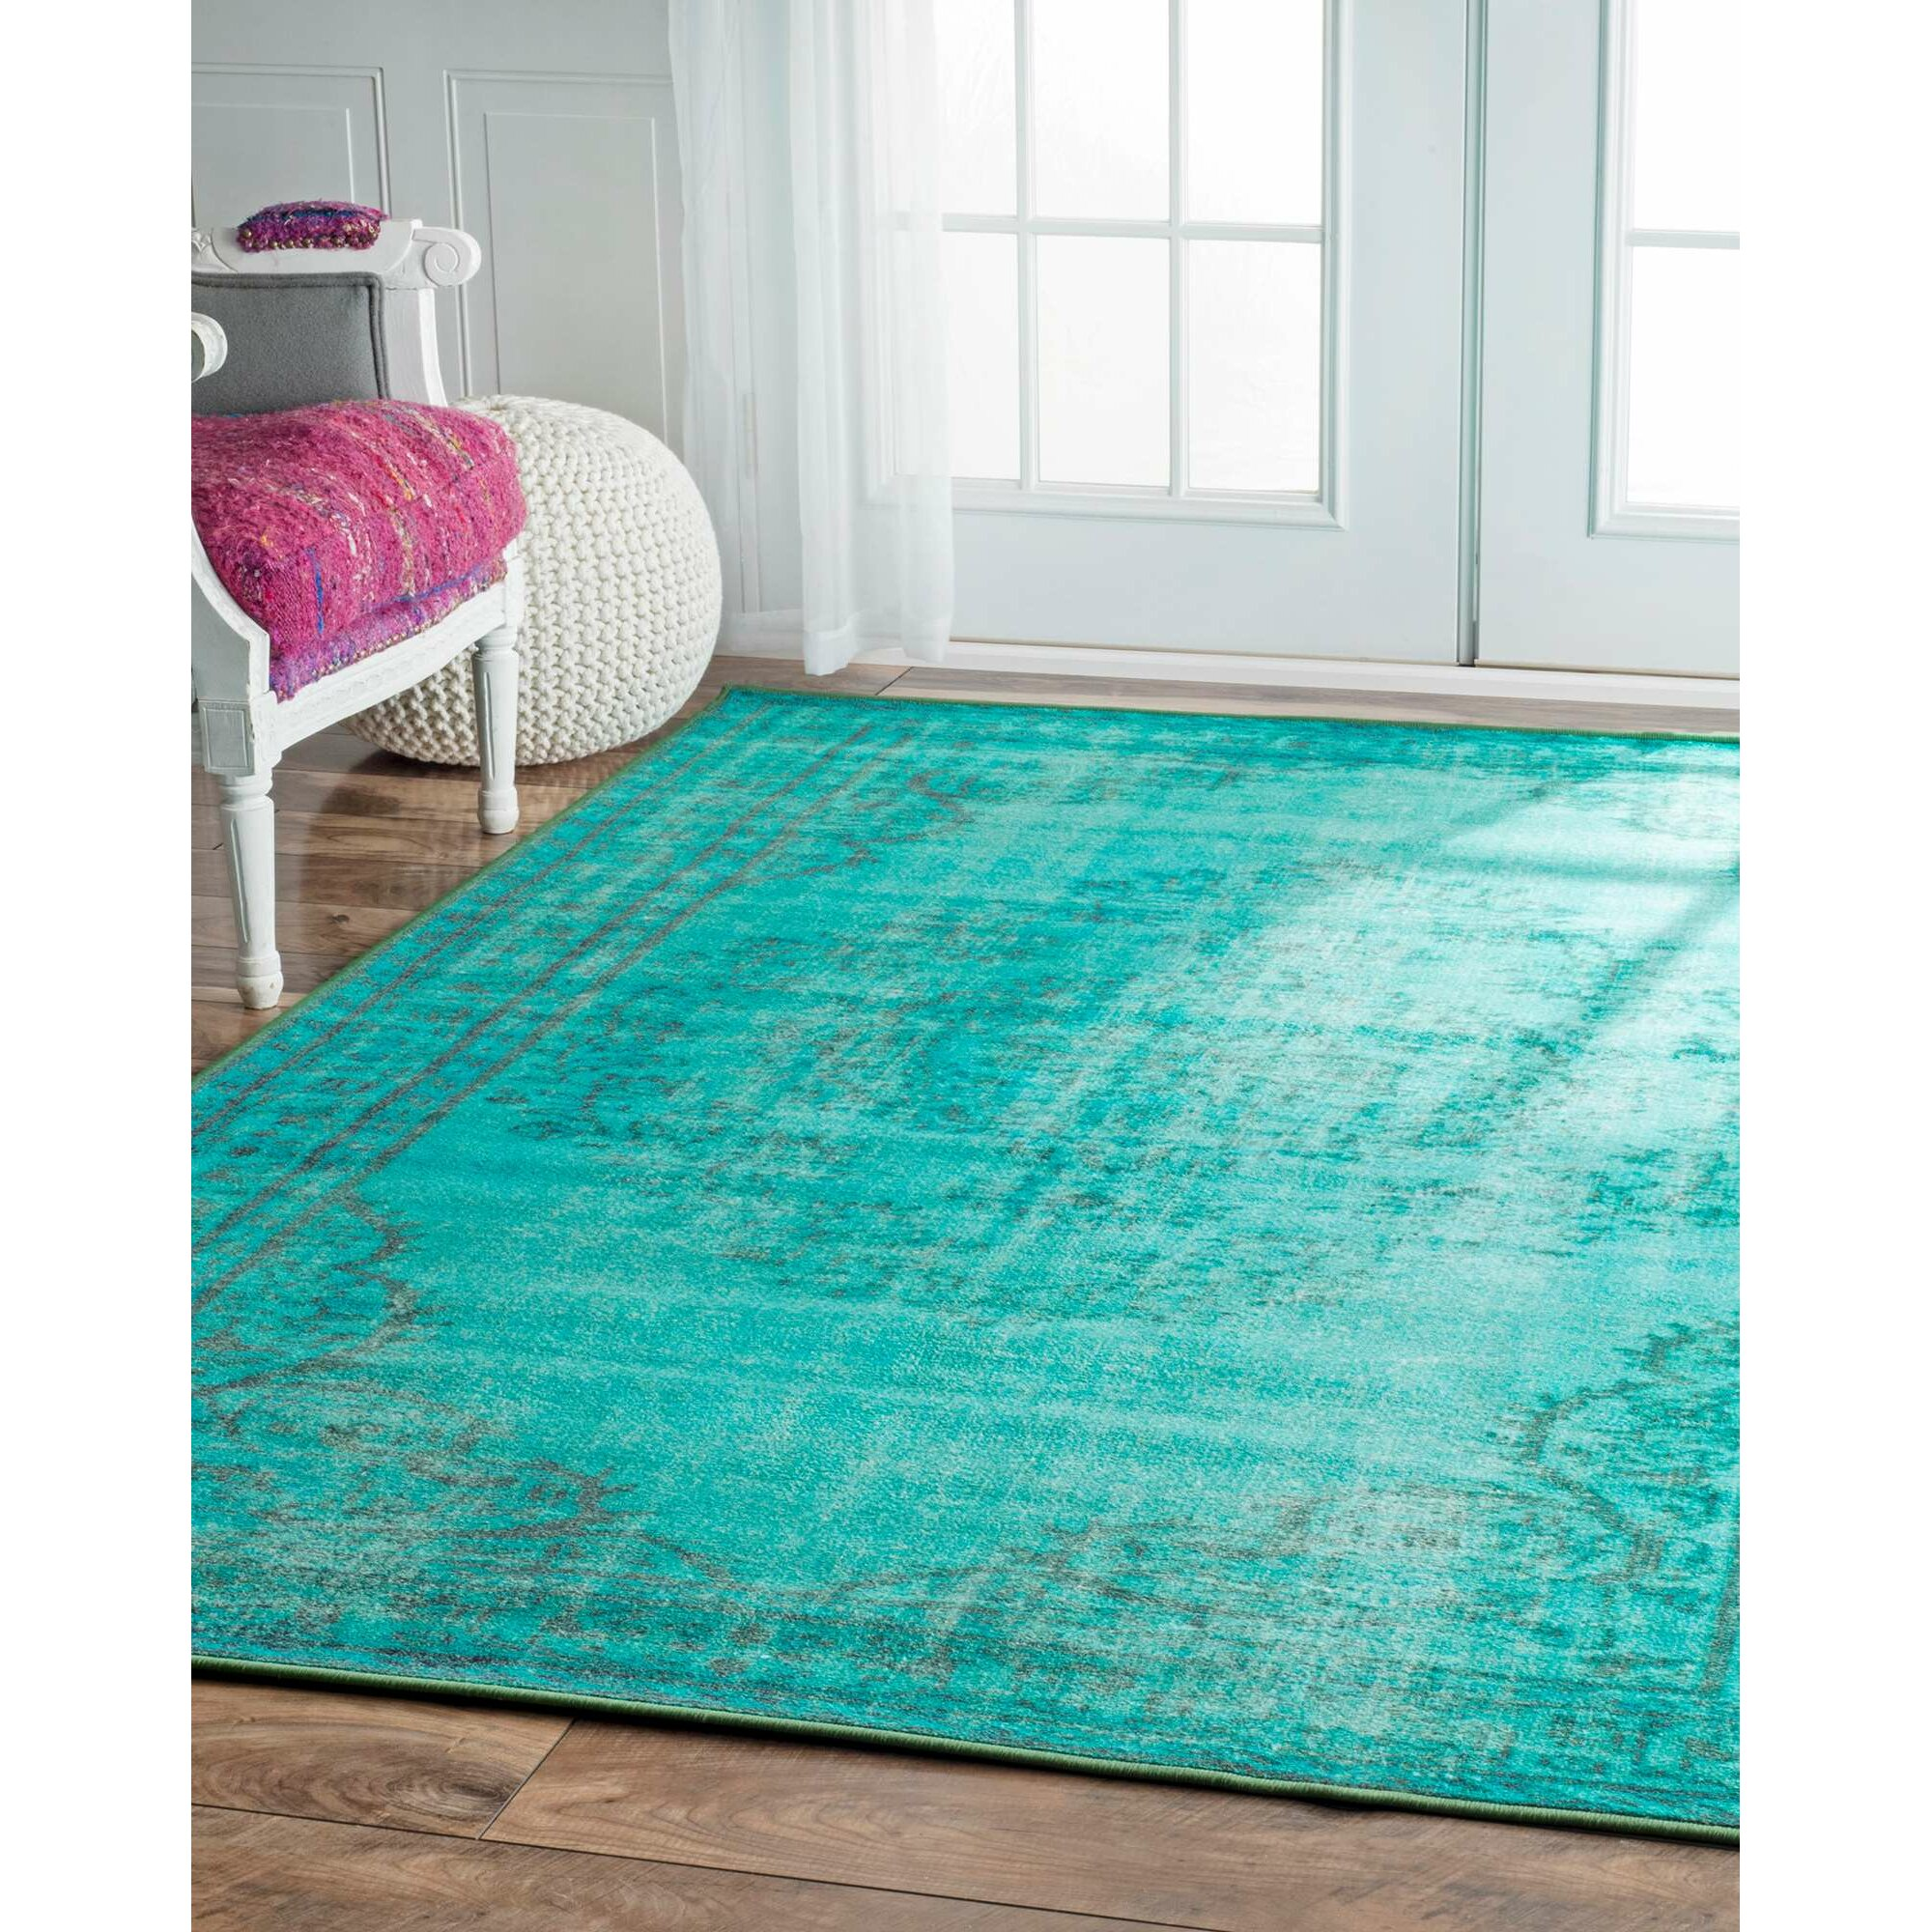 Nuloom Crandall Turquoise Area Rug Reviews: Nuloom Inc Overdyed Turquoise Area Rug & Reviews